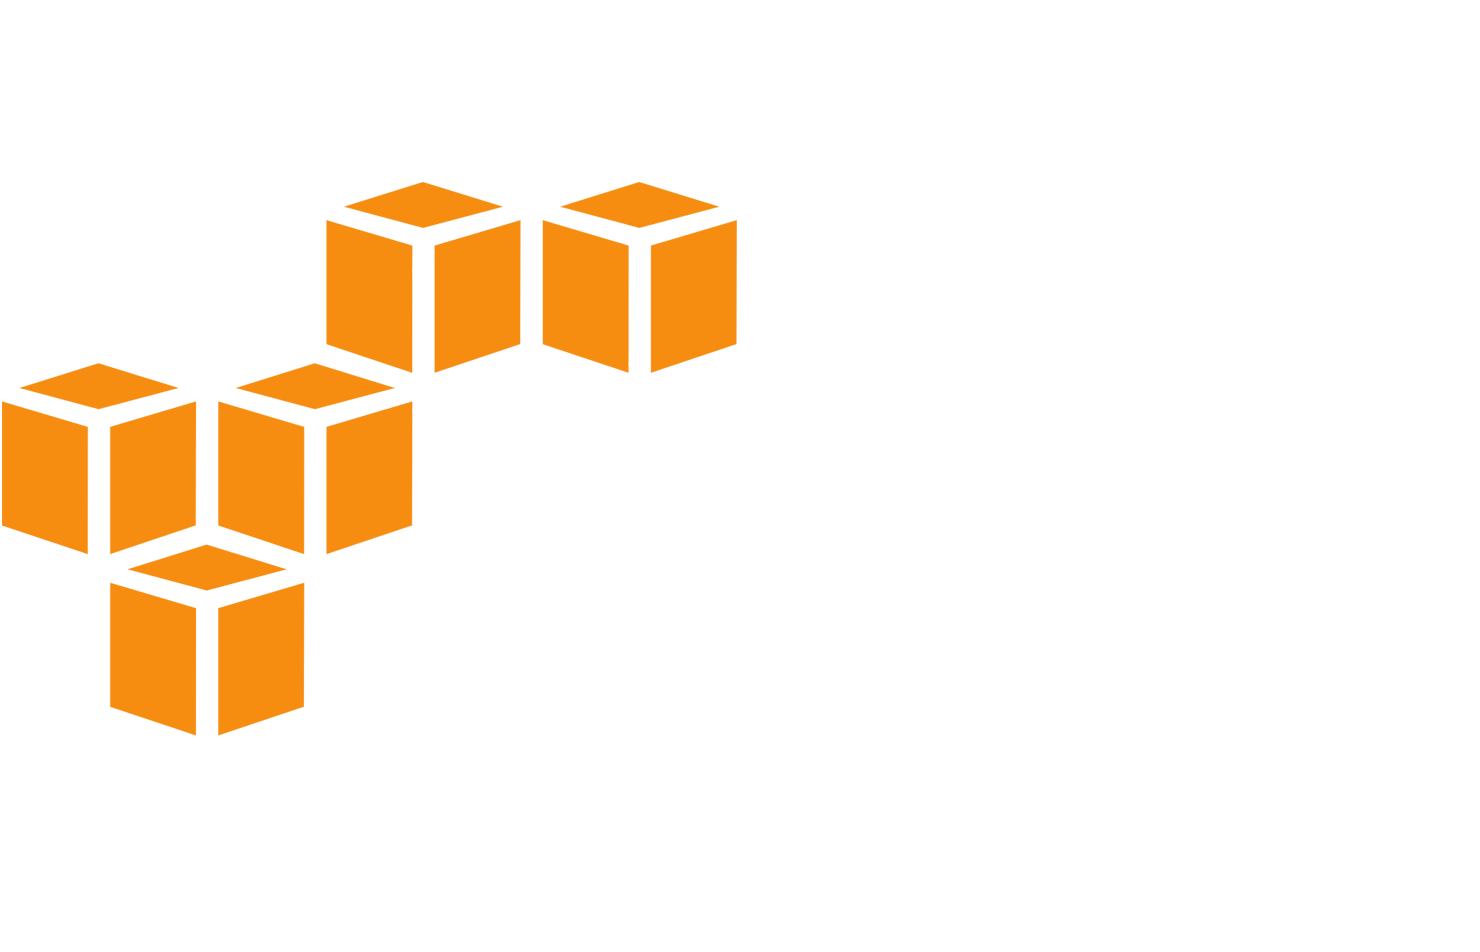 aws_01a.png